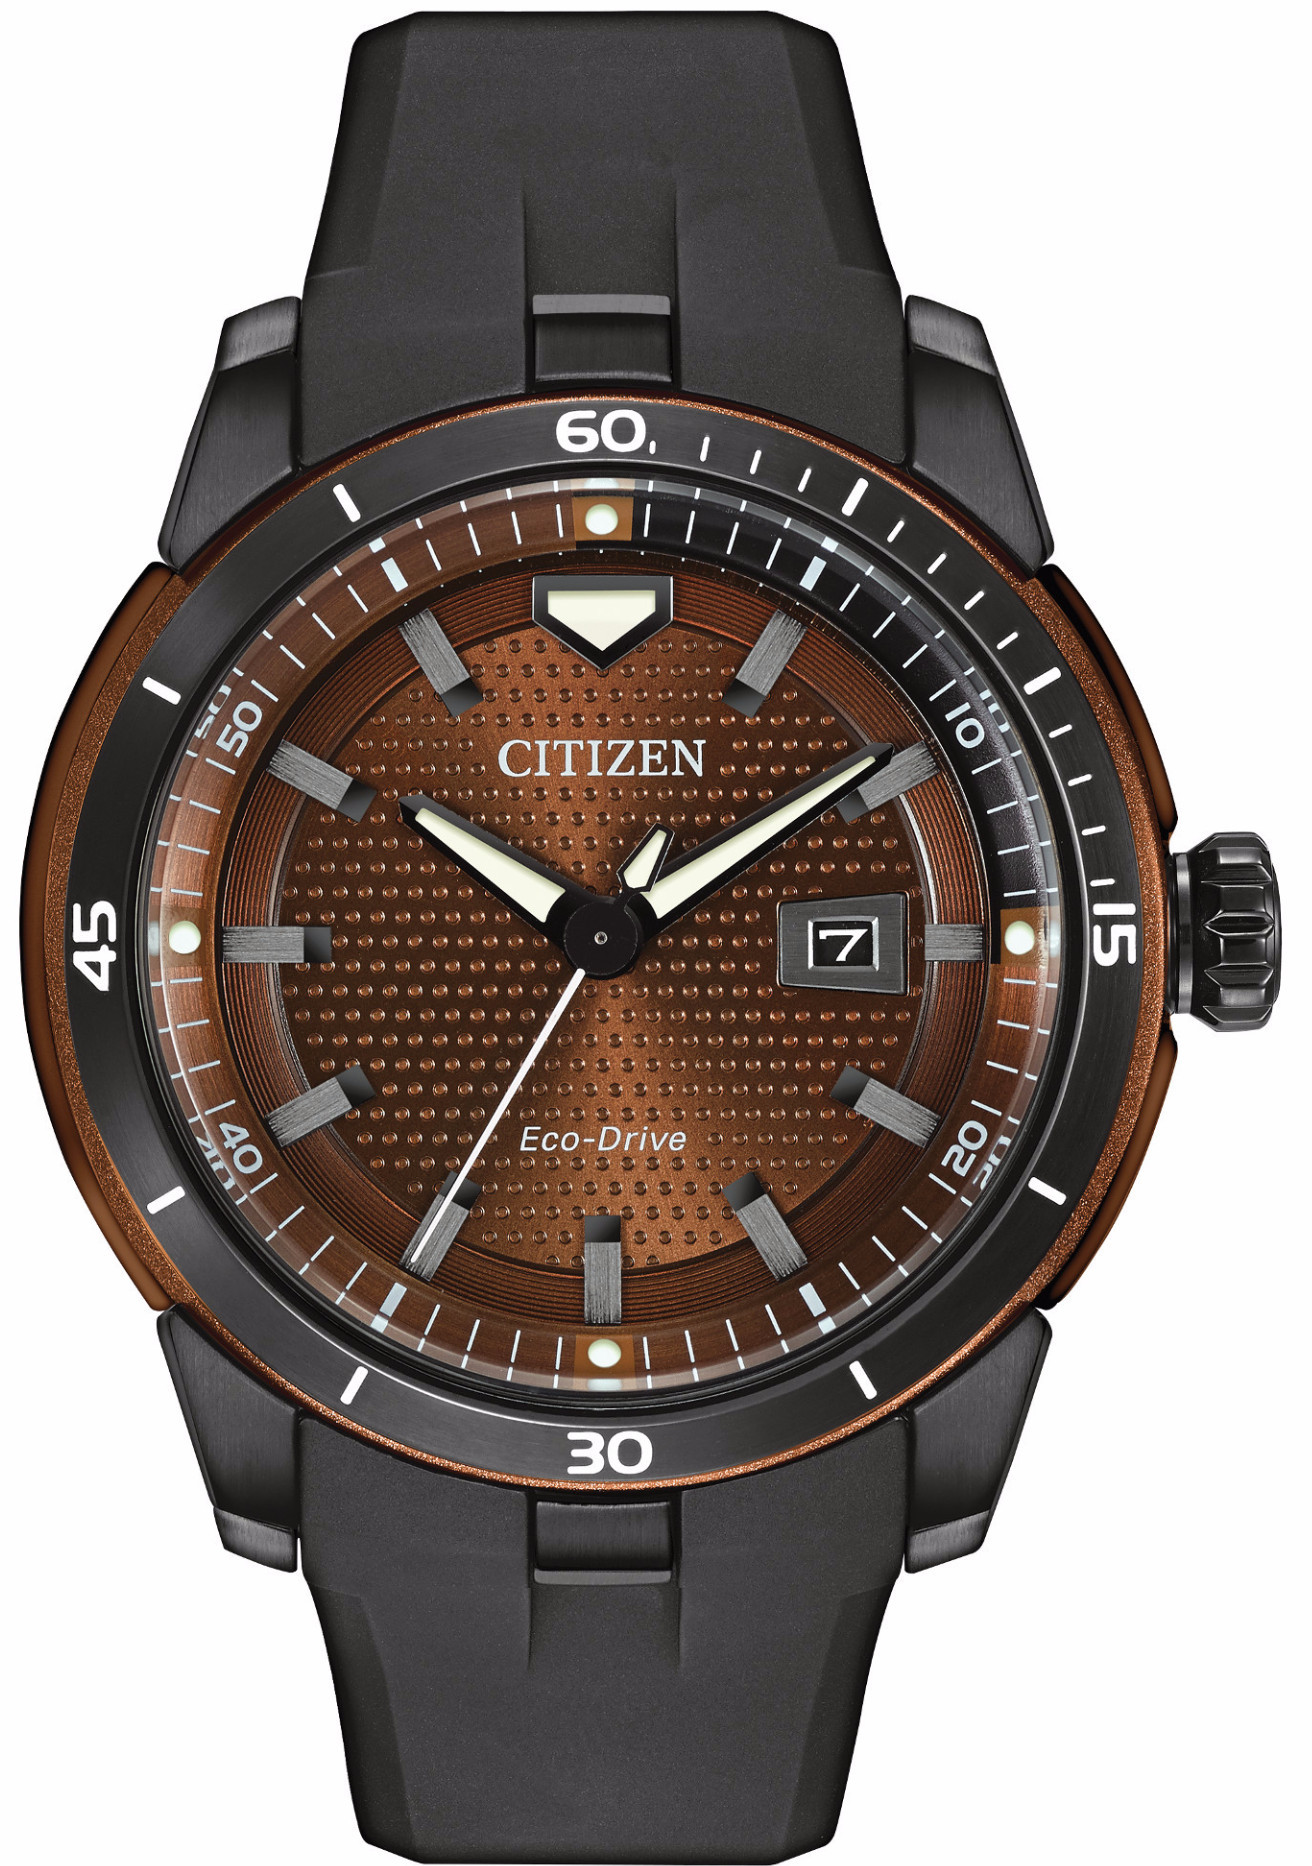 Citizen Men's Eco Drive Stainless Steel 100M Water Resistant Watch